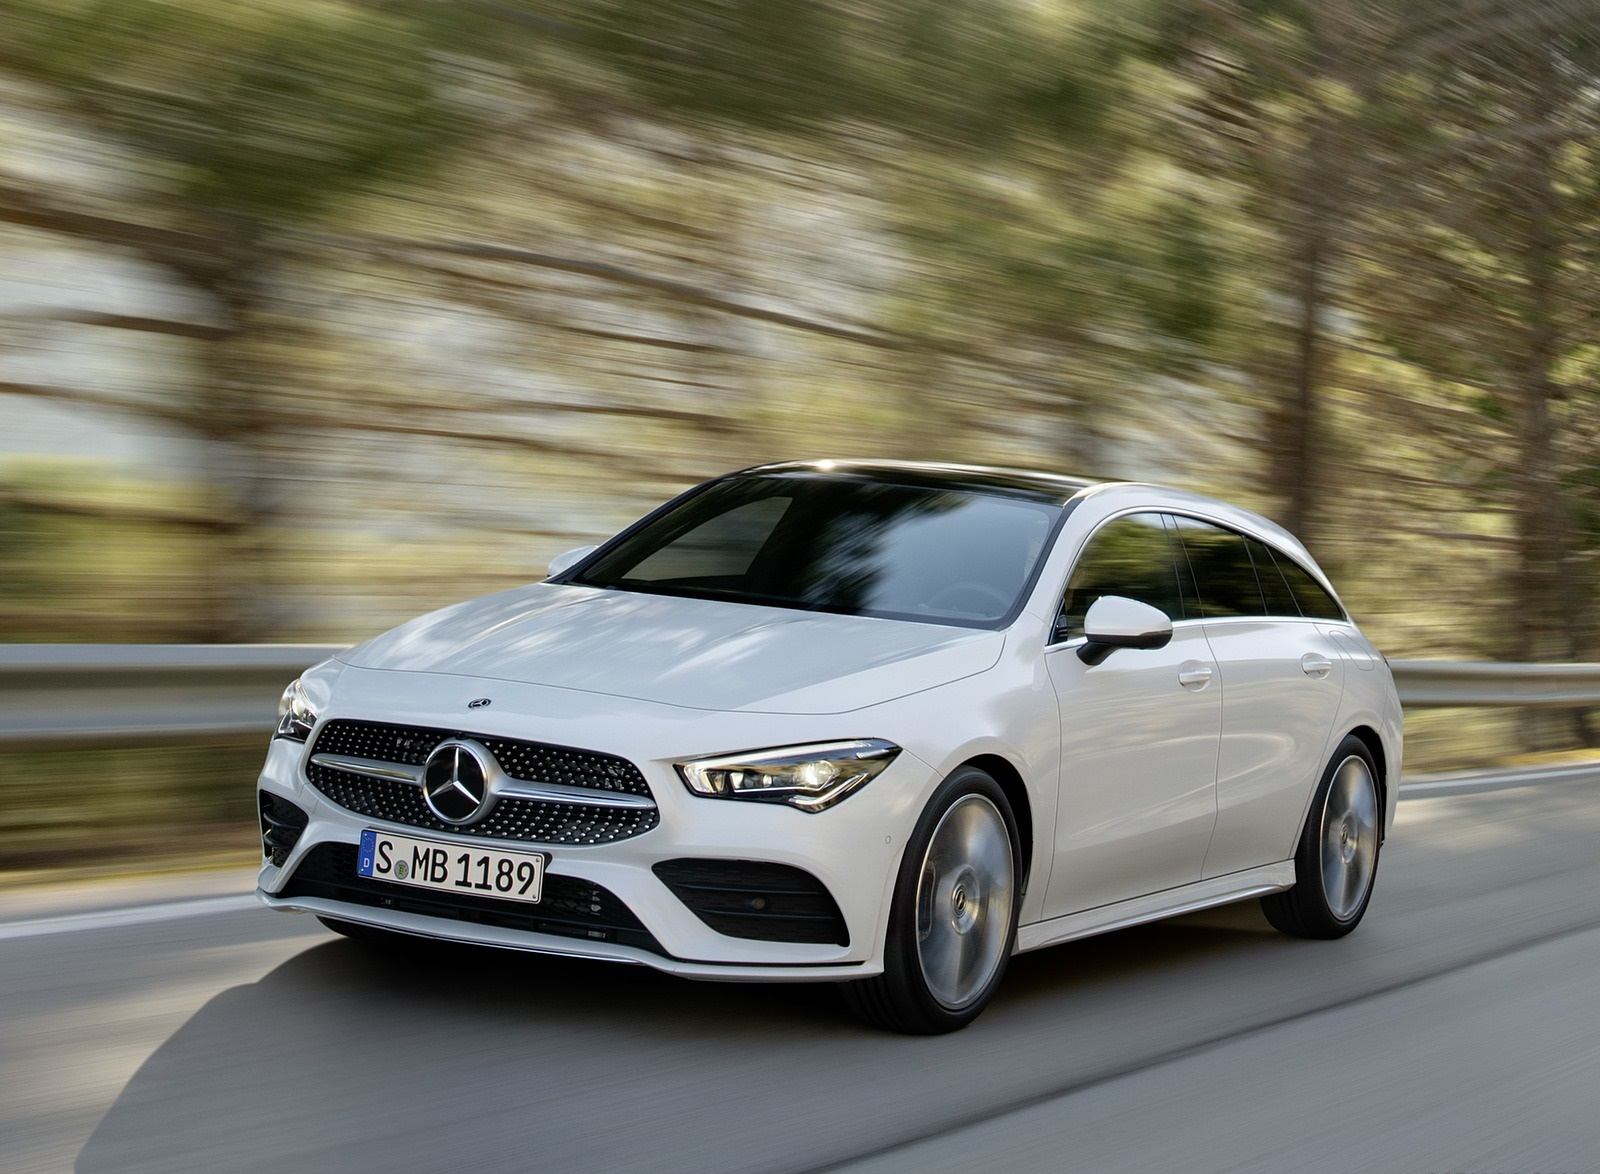 2020 Mercedes-Benz CLA Shooting Brake AMG-Line (Color: Digital White) Front Three-Quarter Wallpapers (2)